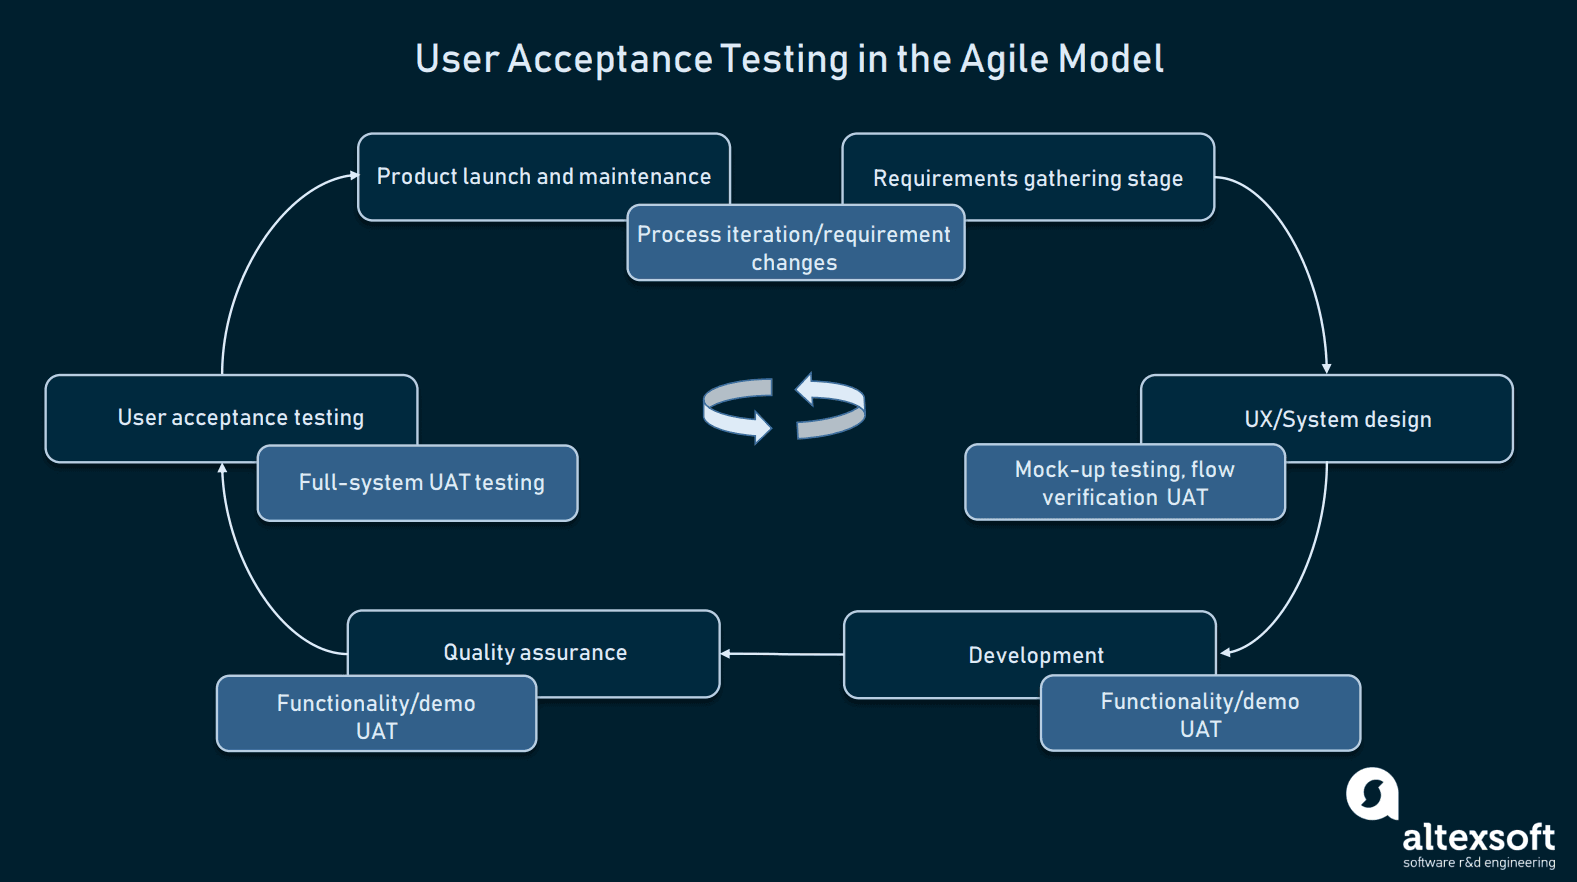 User Acceptance in the Agile Model